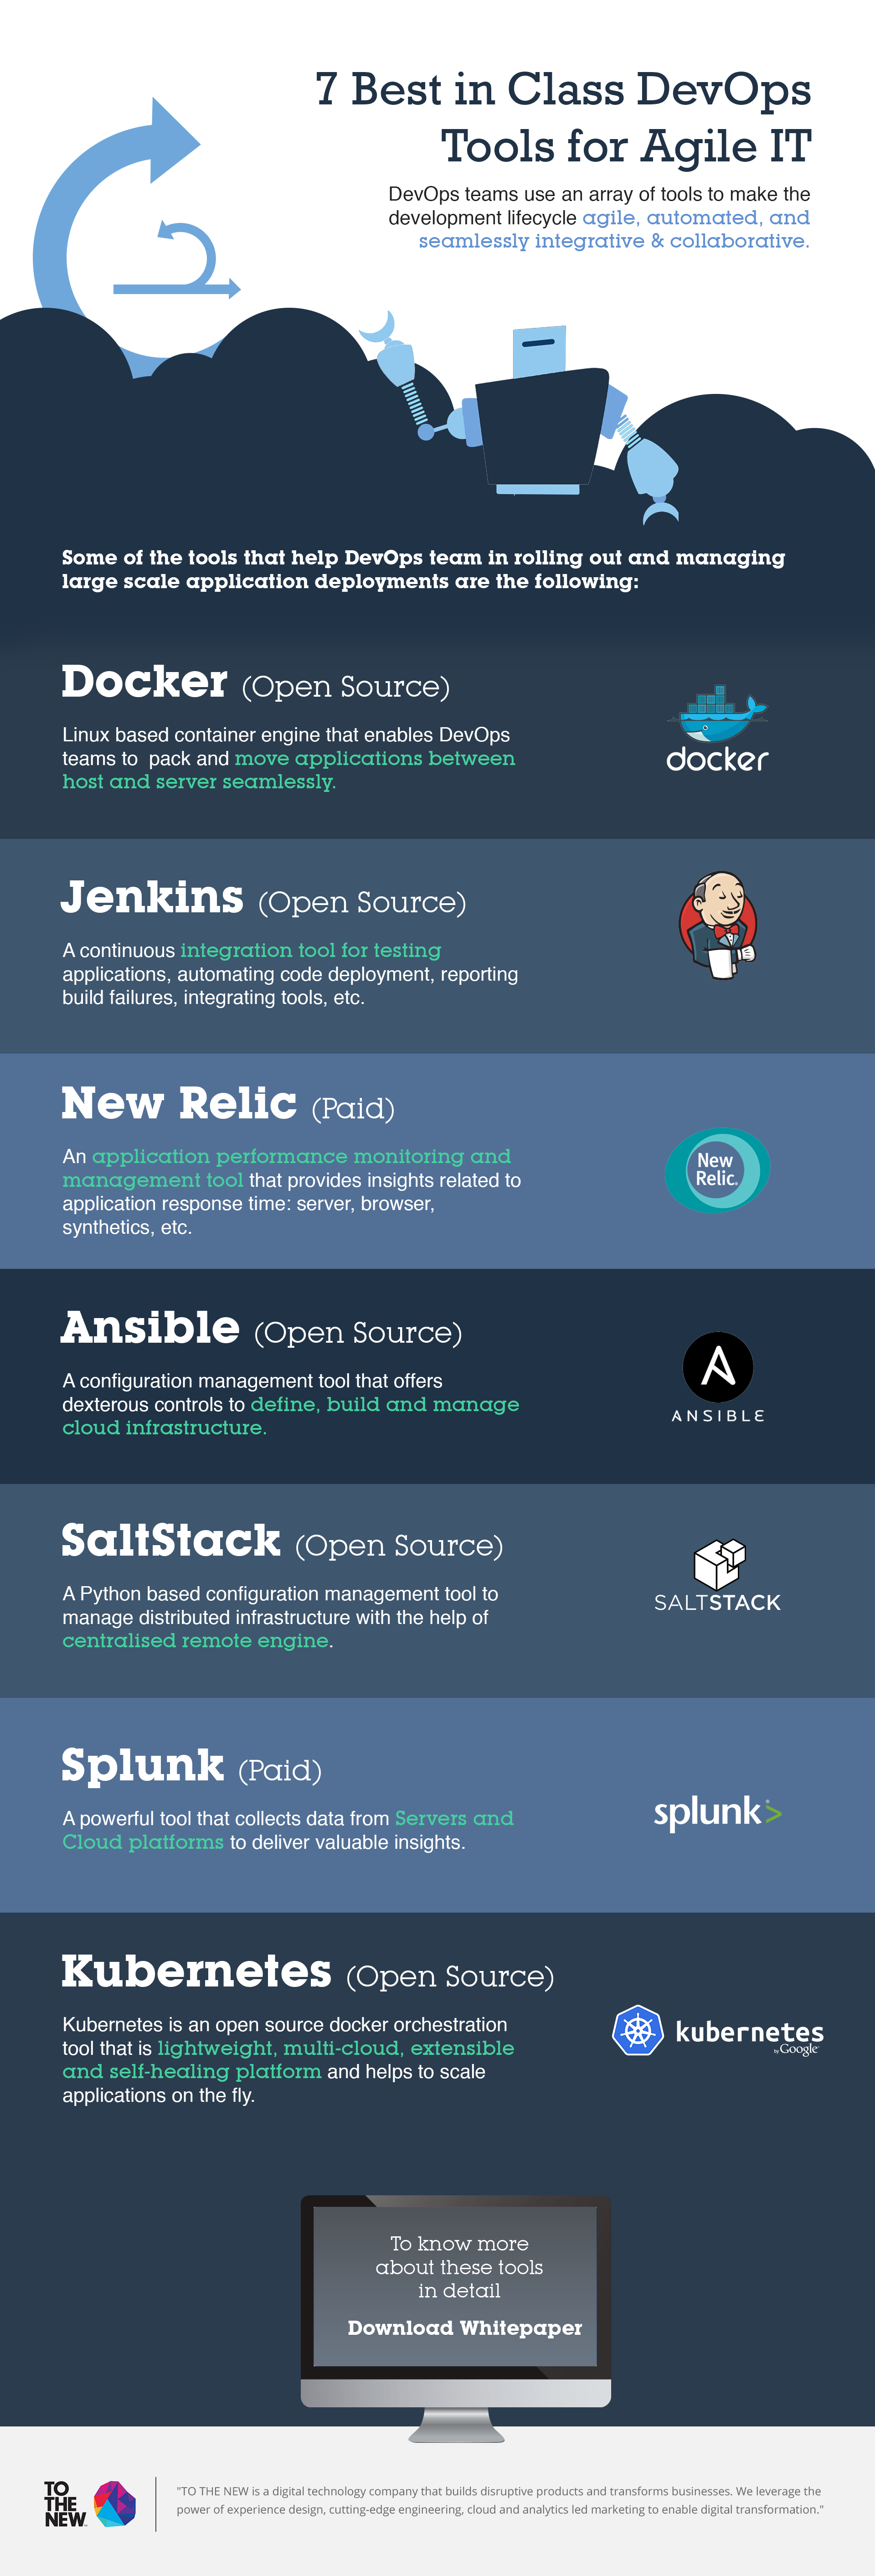 Infographic: 7 Best DevOps Tools for Agile IT | TO THE NEW Blog